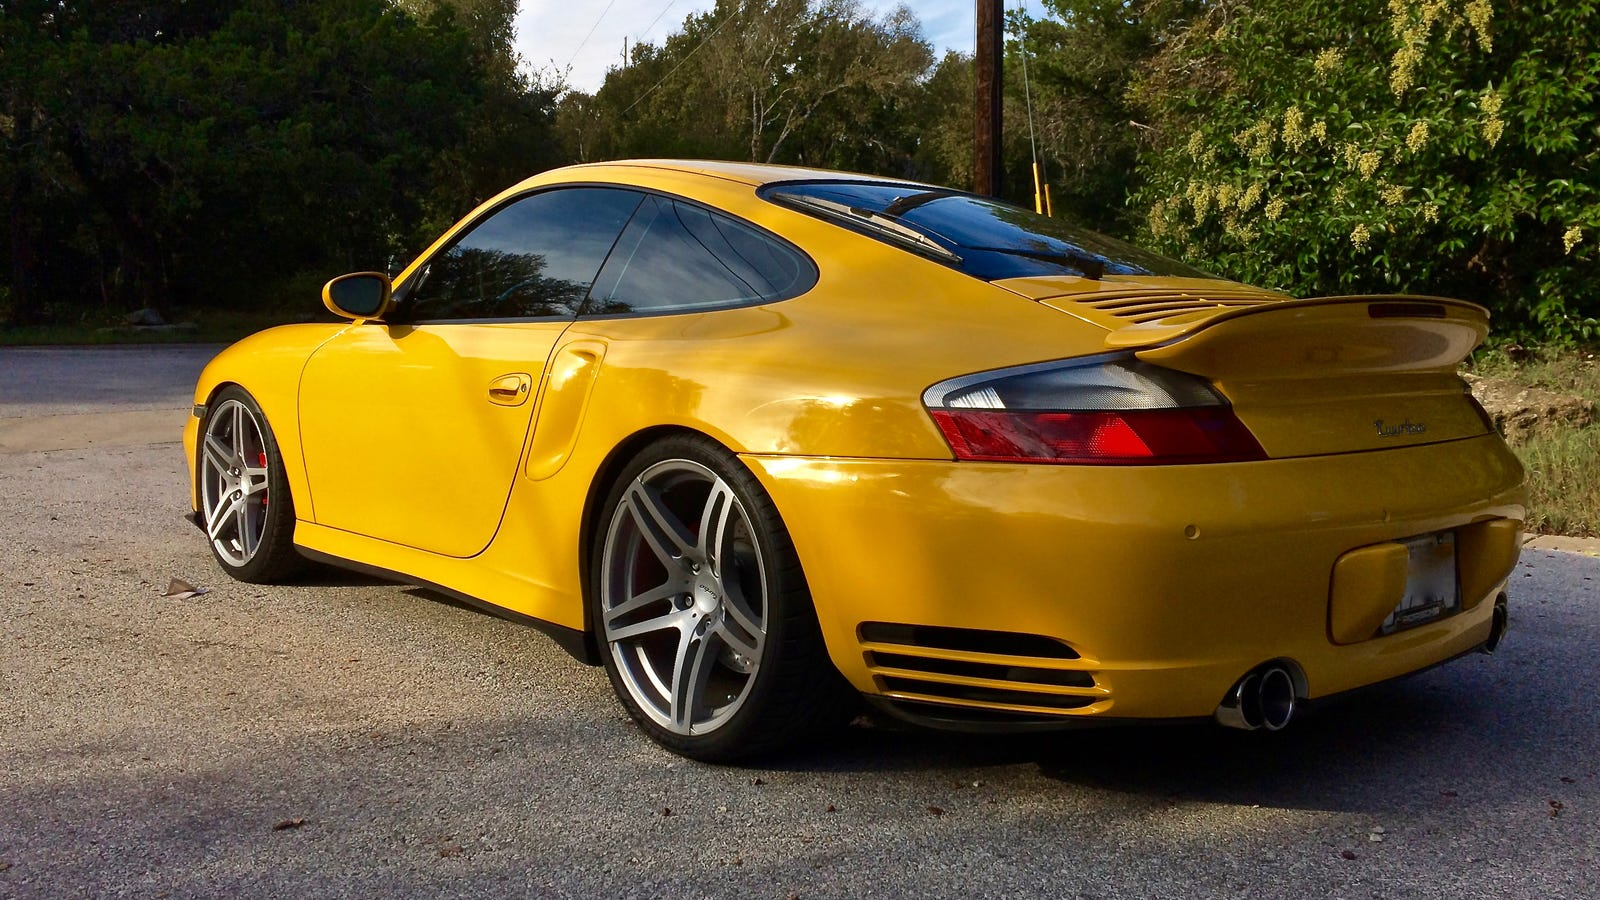 Here S How To Own The 996 Porsche 911 Turbo You Really Want